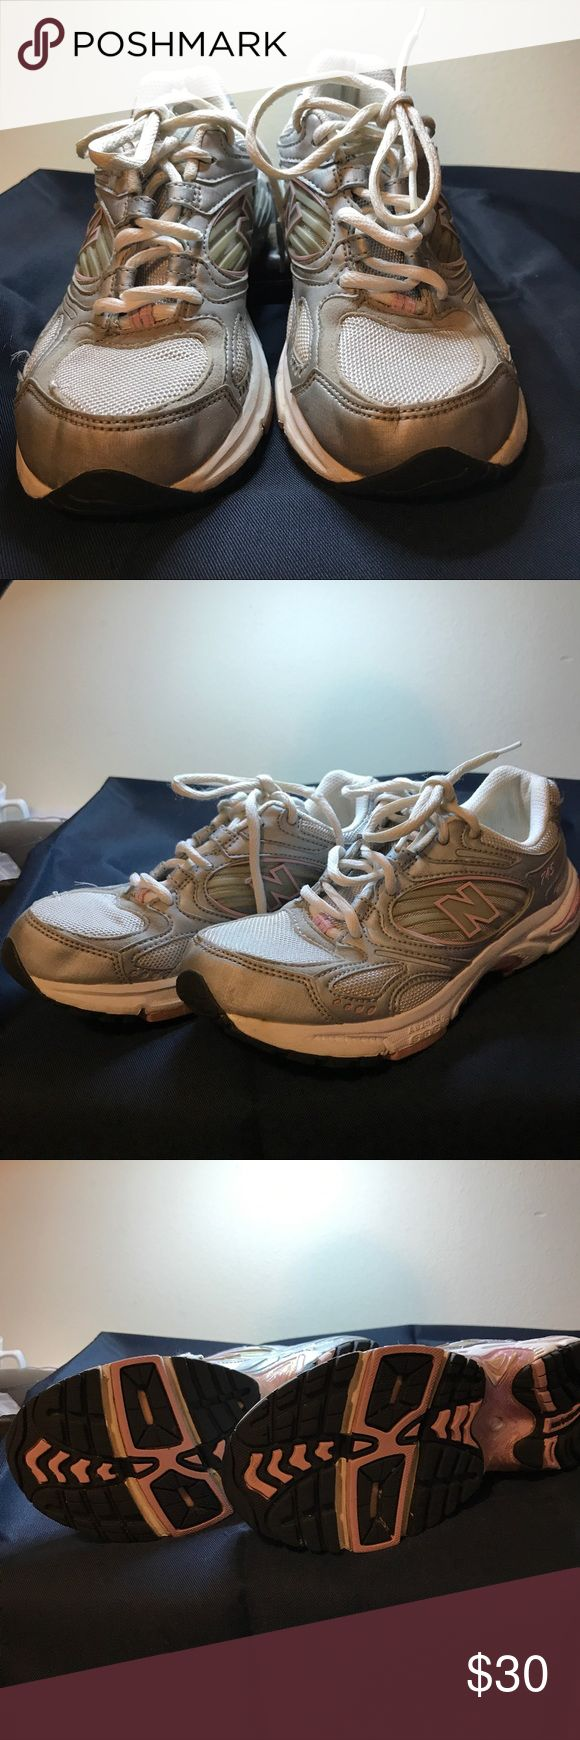 Nike ladies running shoe, size 7 1/2 Nike ladies running shoe, size 7 1/2 , preowned but in excellent condition gray with pink trim.  Proceeds from this closet support Project Hope,a ministry to homeless single moms and their children Nike Shoes Sneakers